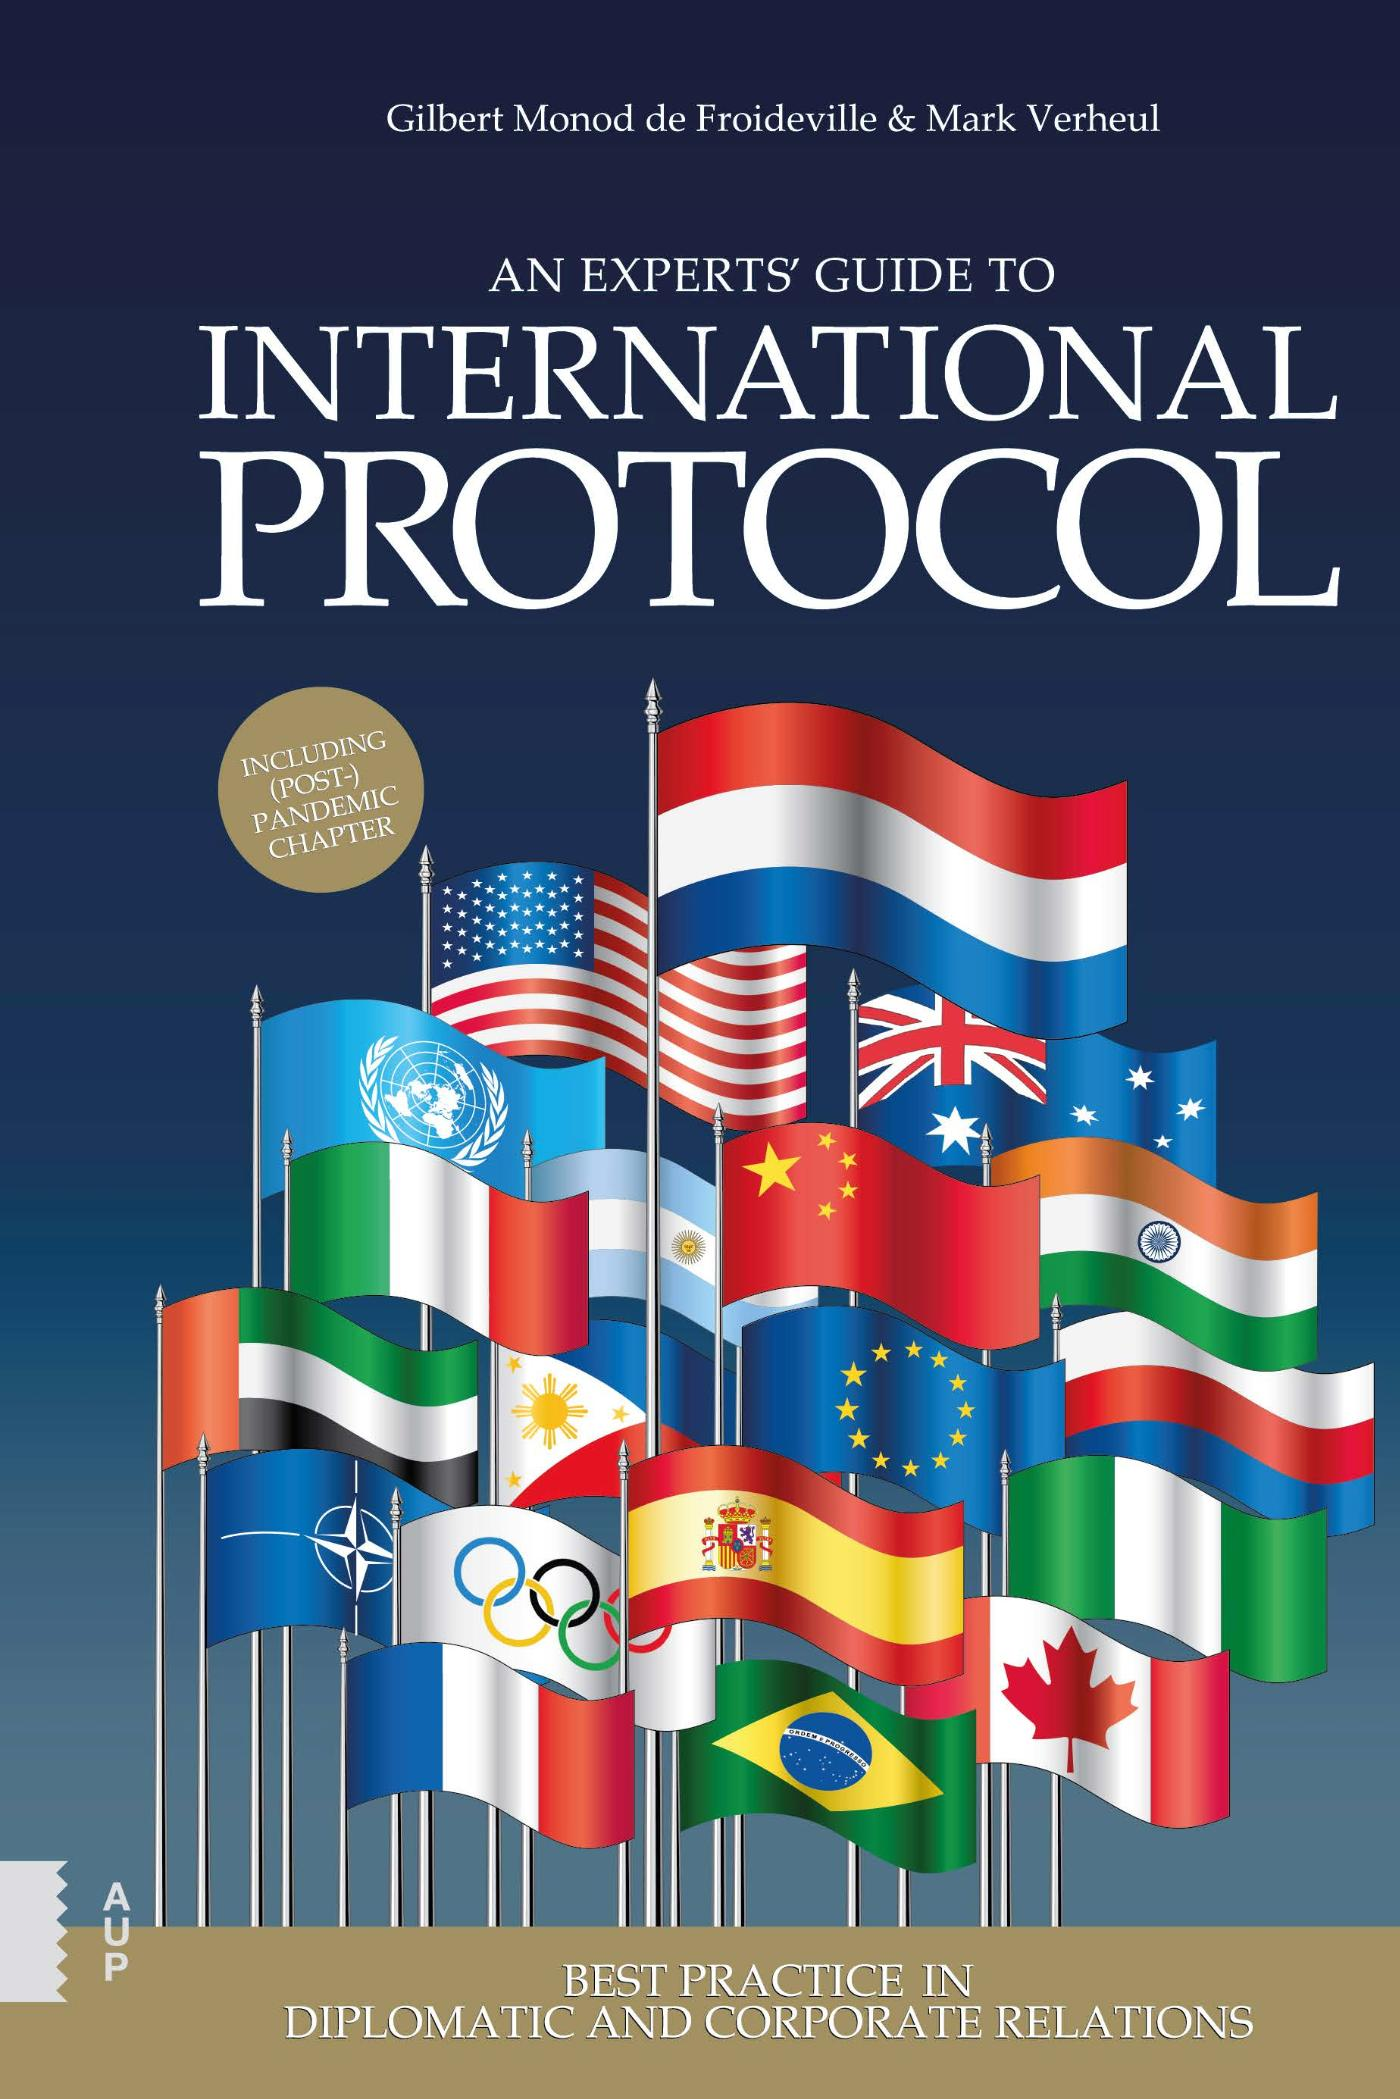 An Experts' Guide to International Protocol